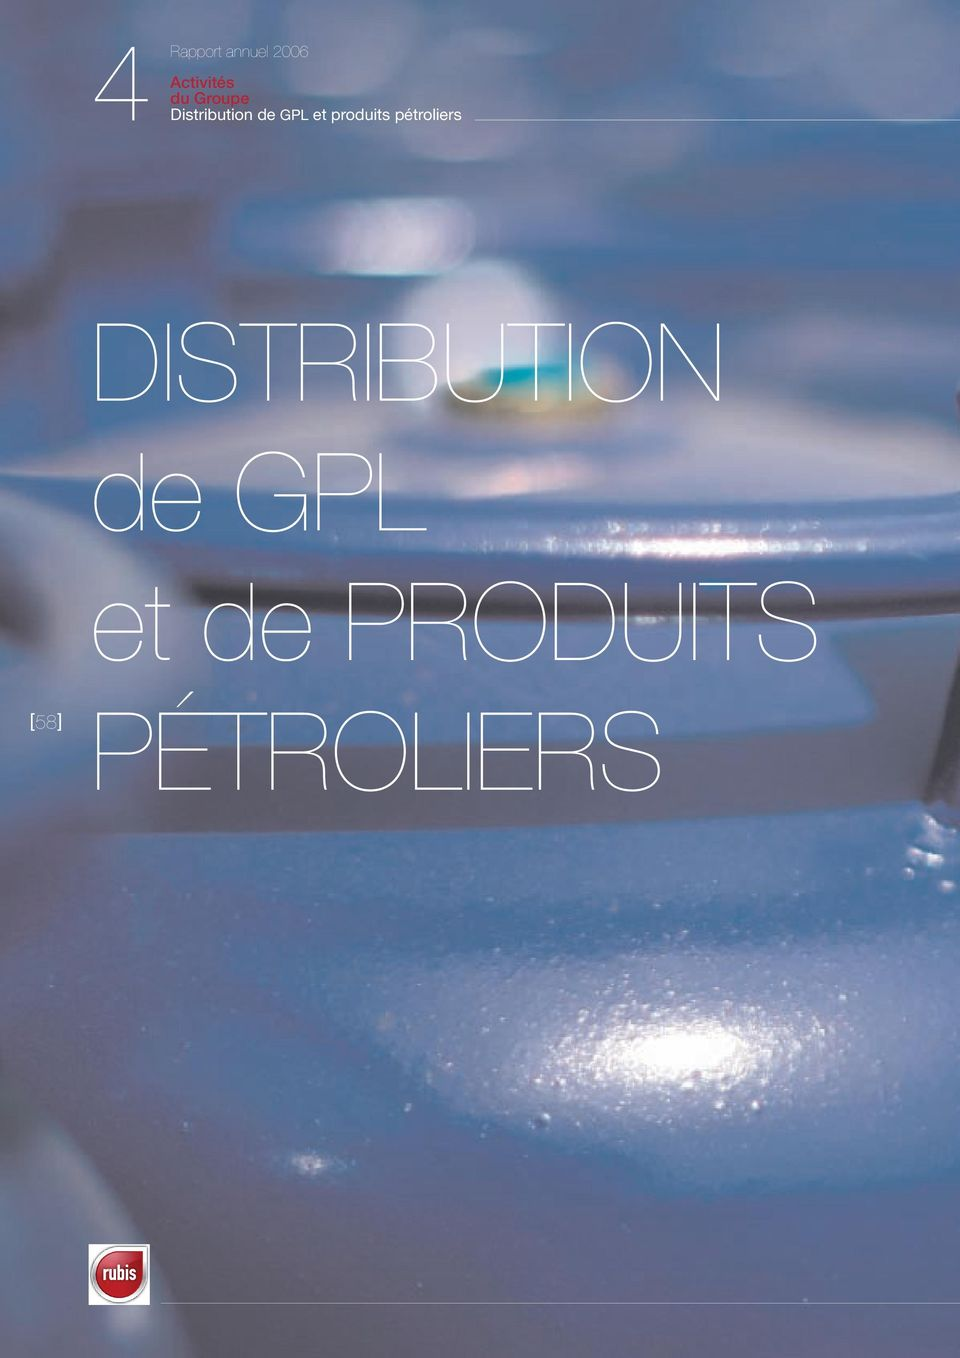 DISTRIBUTION de GPL et